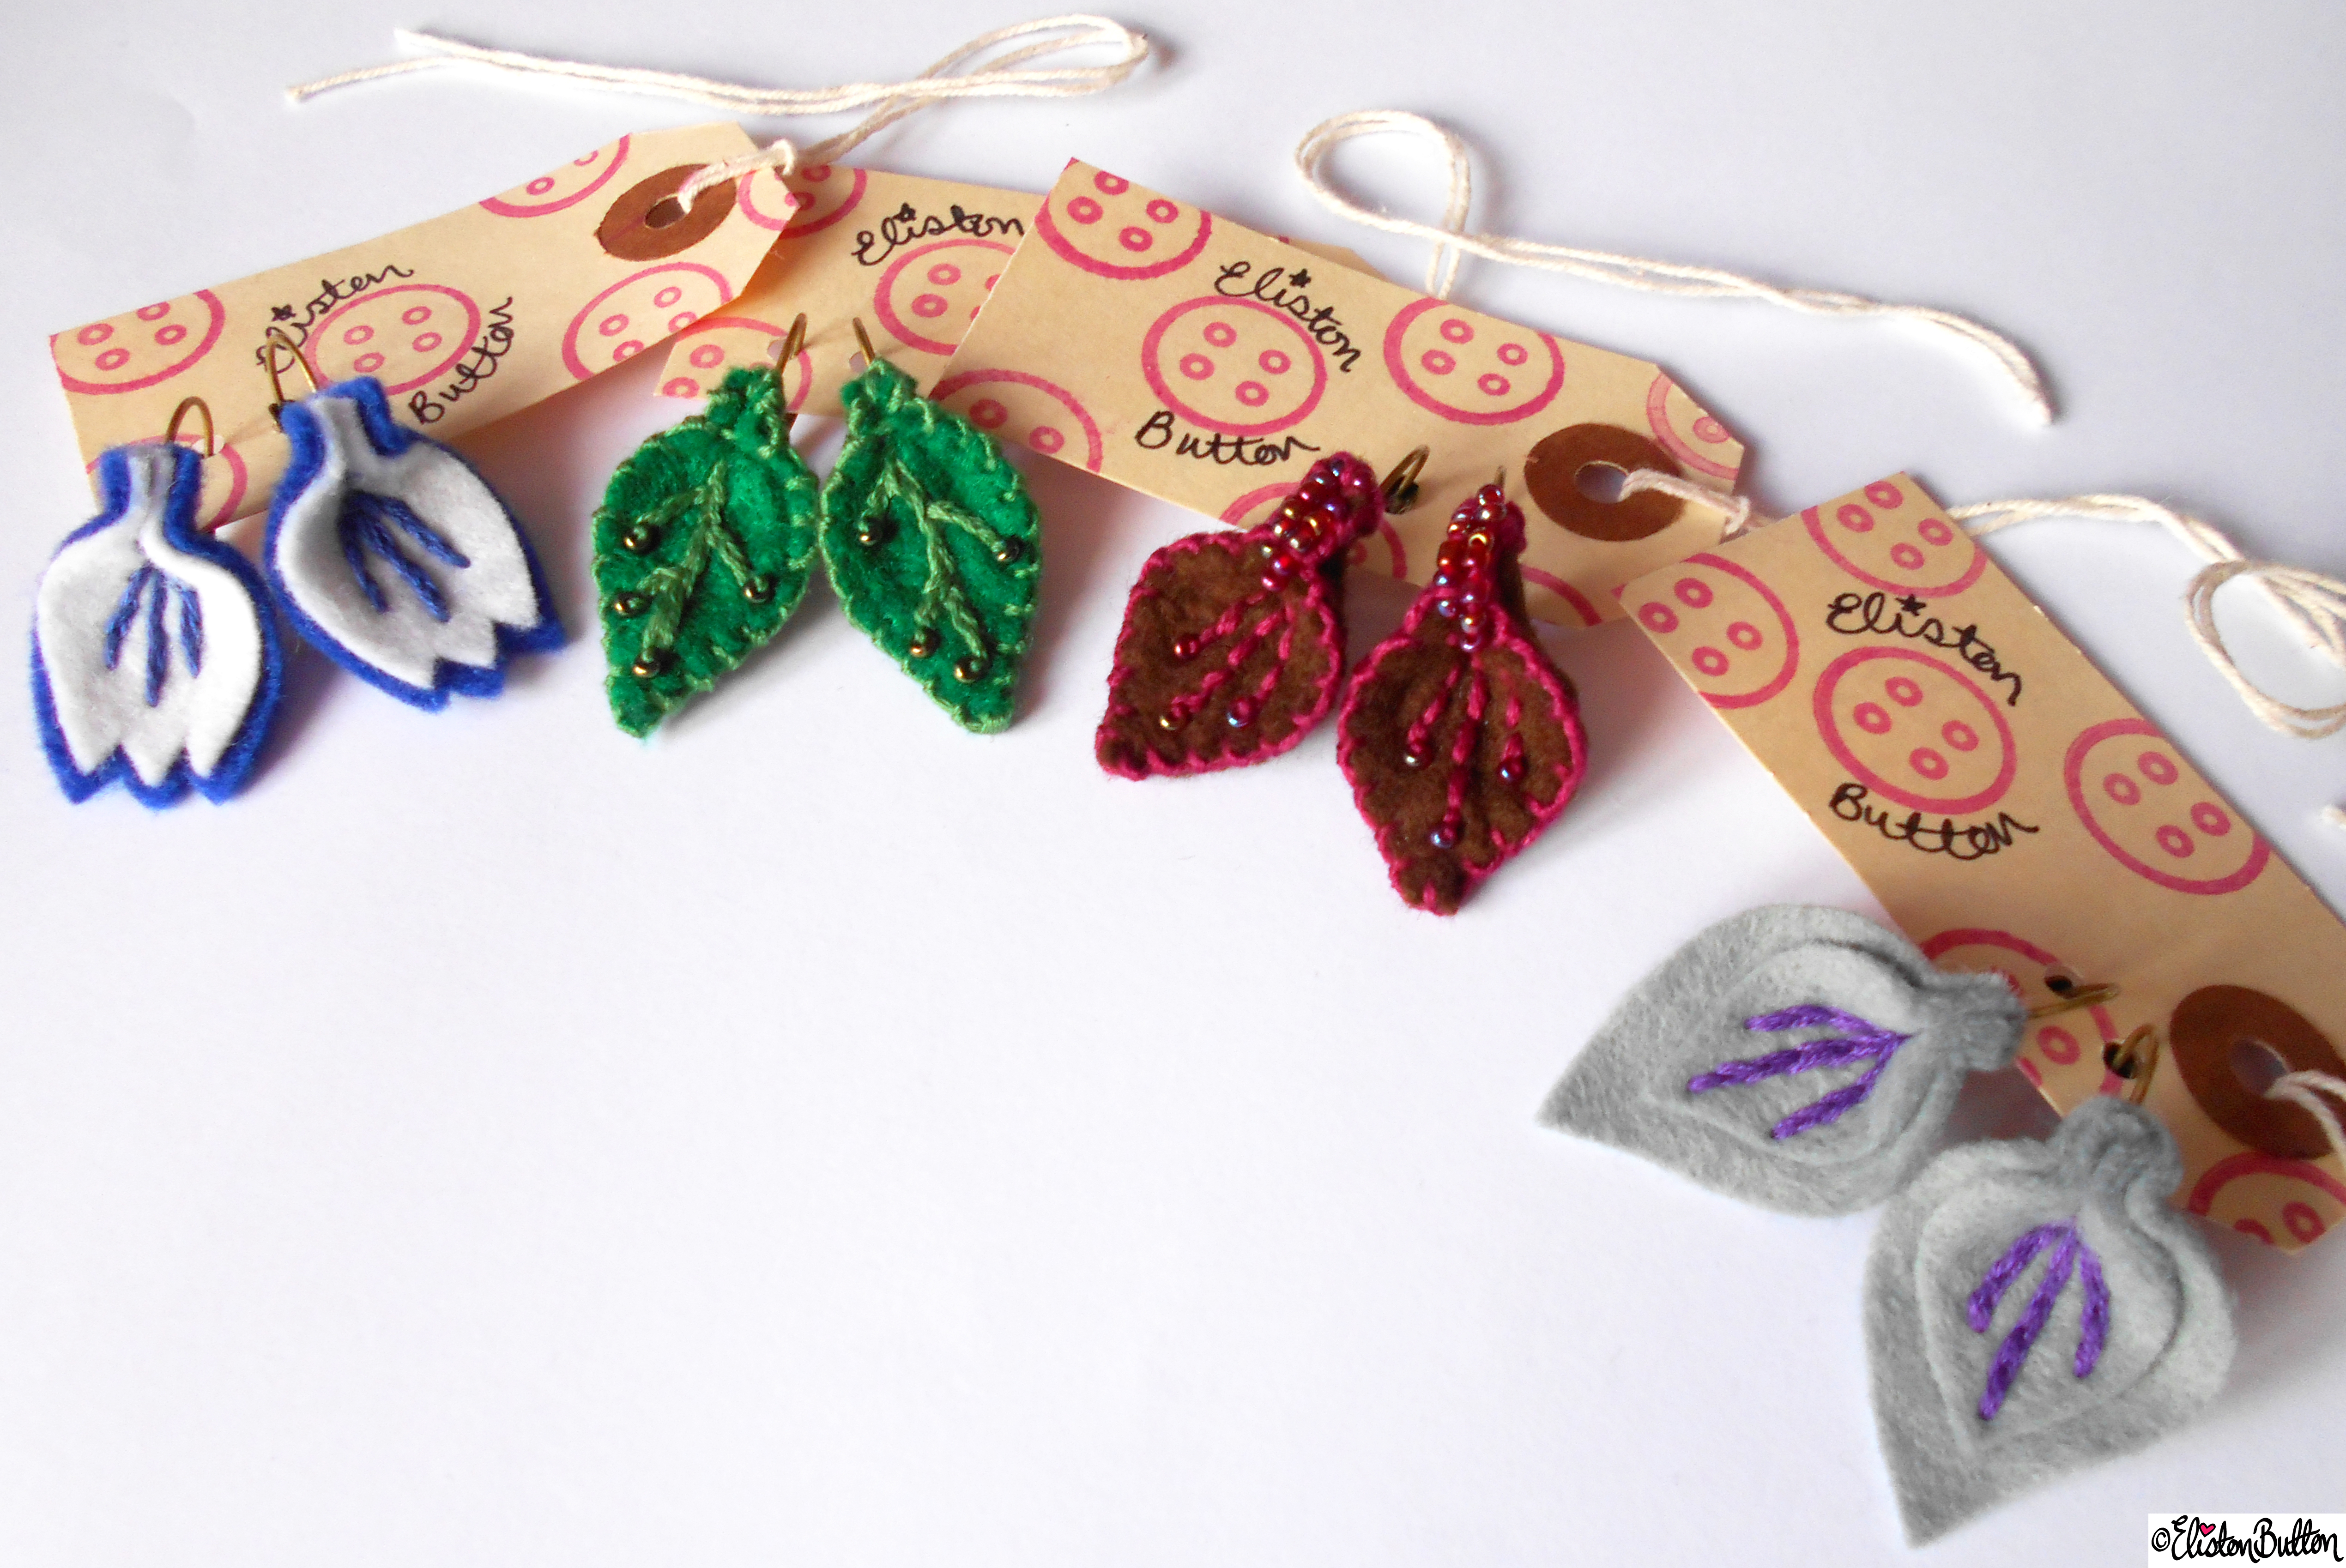 Handmade Embroidered and Beaded Felt Petal and Leaf Drop Earrings by Eliston Button - Create 28 - No.2 - Embroidered Felt Petal Earrings at www.elistonbutton.com - Eliston Button - That Crafty Kid – Art, Design, Craft & Adventure.